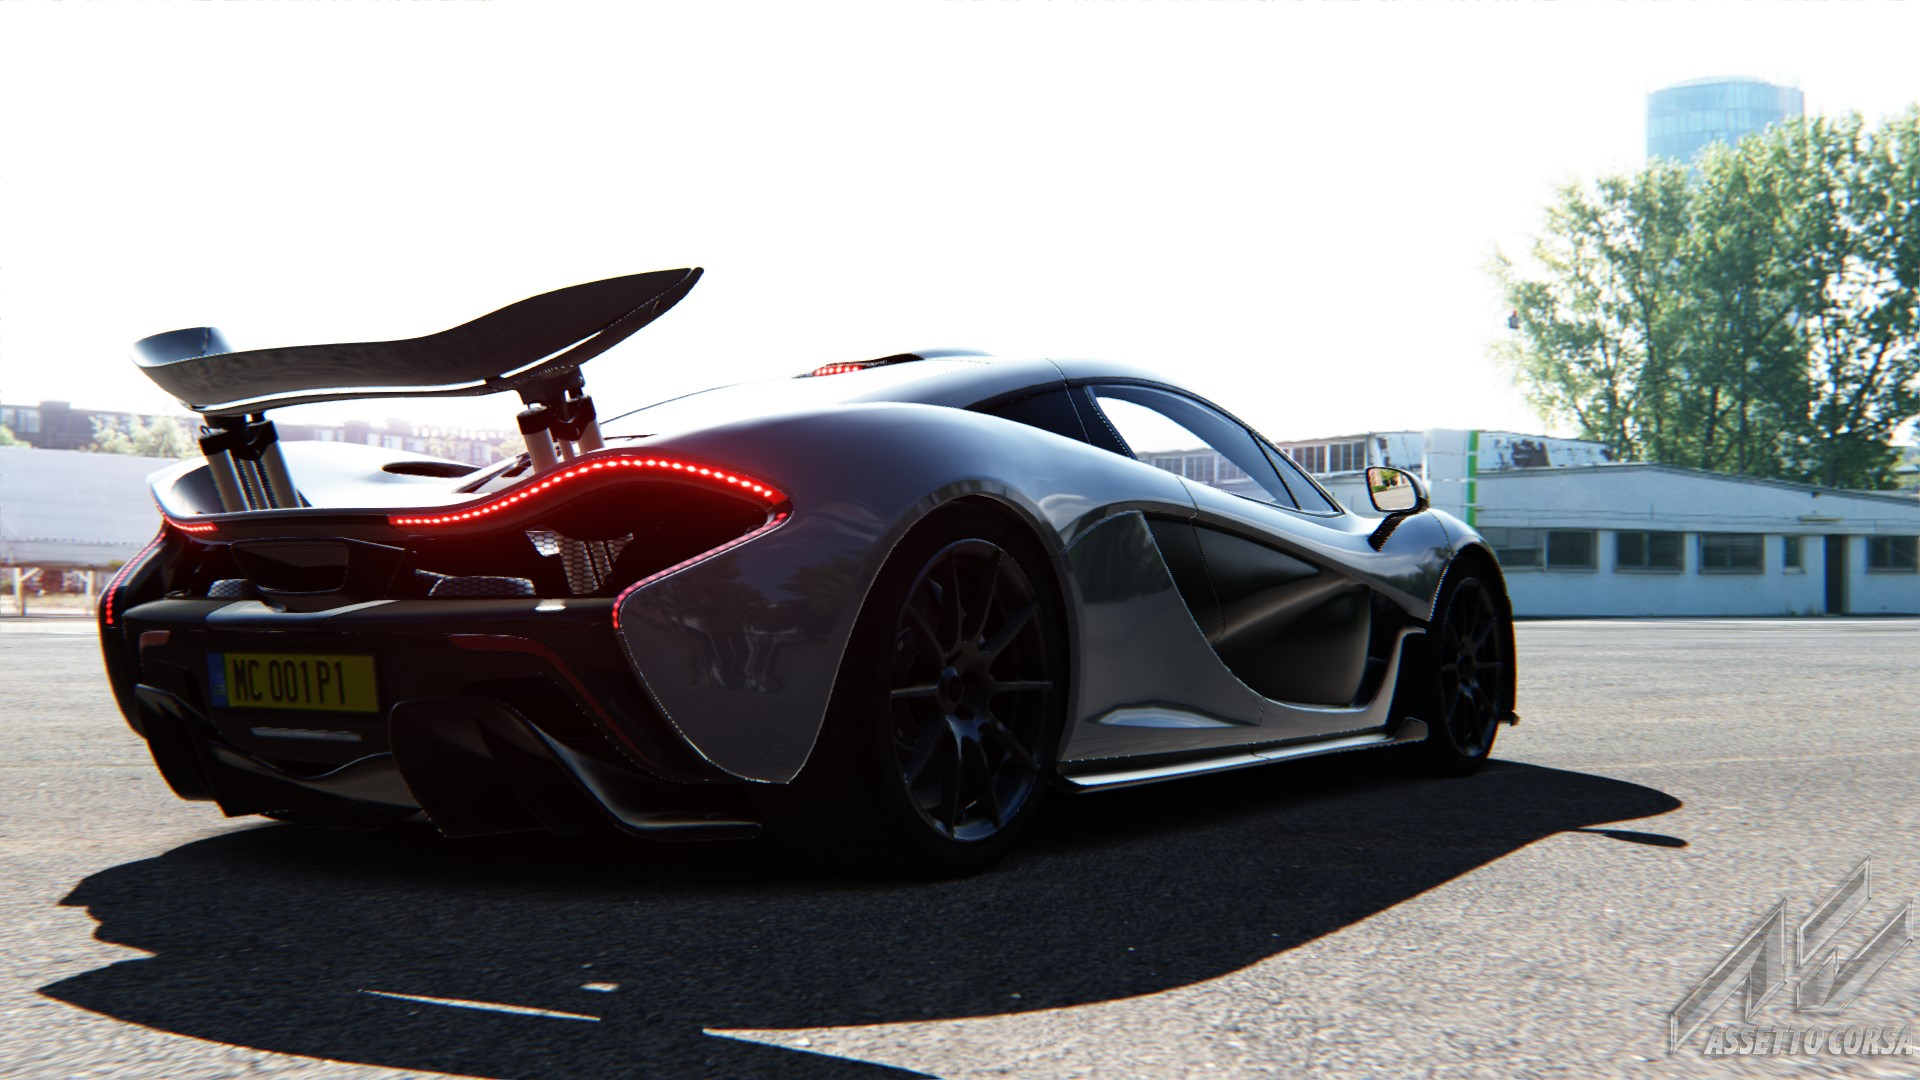 Showroom_ks_mclaren_p1_30-8-2017-17-32-42.jpg